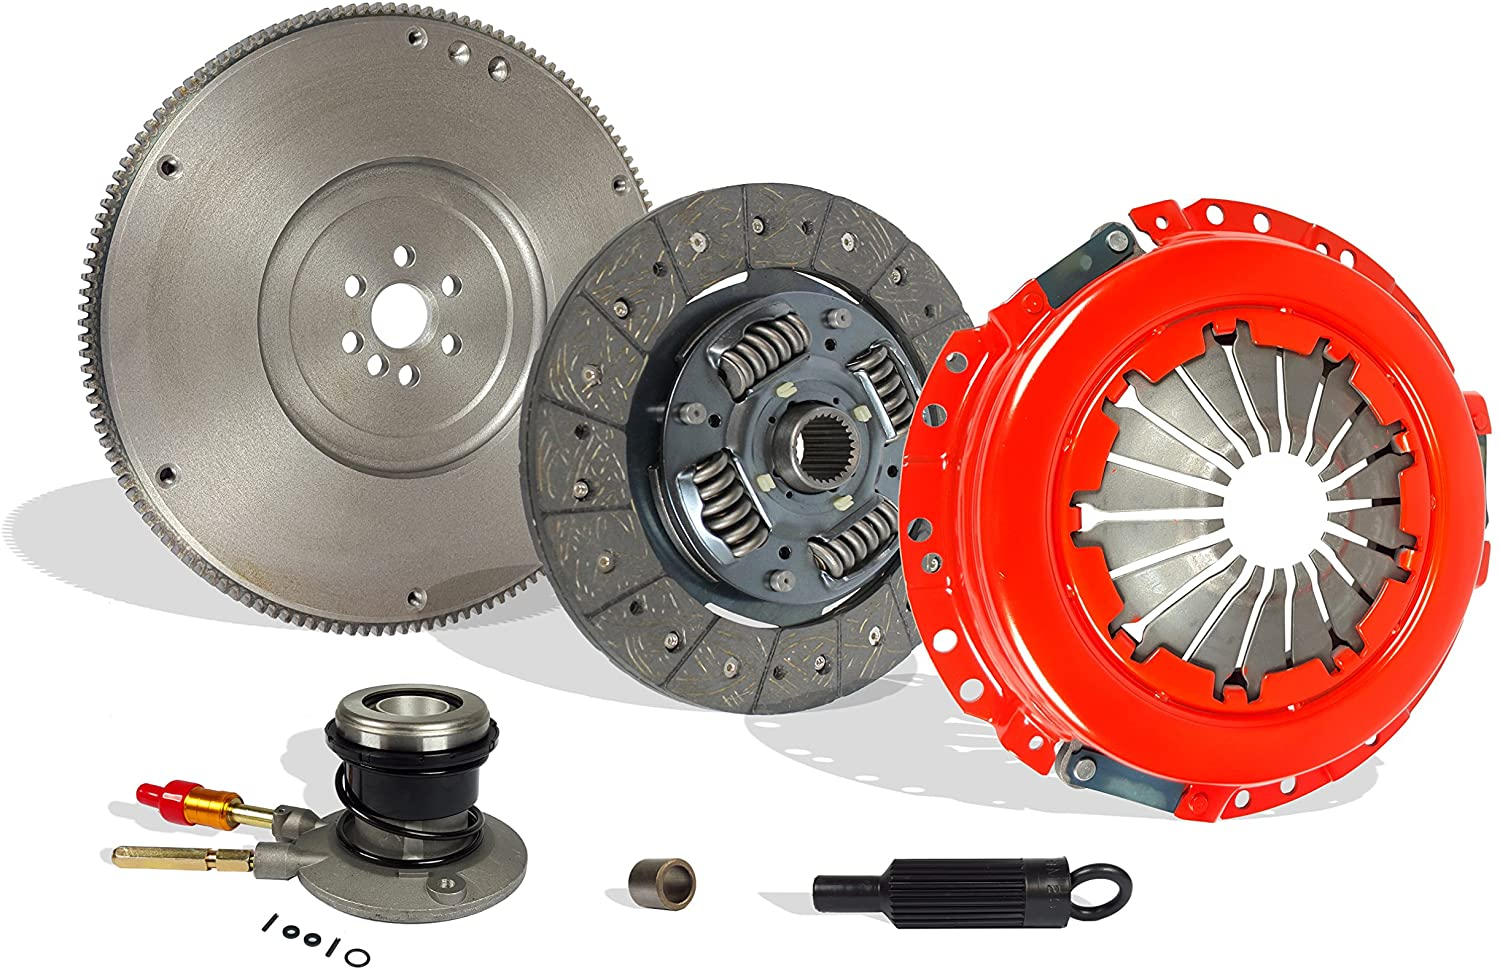 Clutch With Flywheel And Slave compatible with S10 Sonoma Hombre Base LS SL SLS SLE XS Xtreme 1996-2001 2.2L l4 GAS OHV Naturally Aspirated (Stage 1)